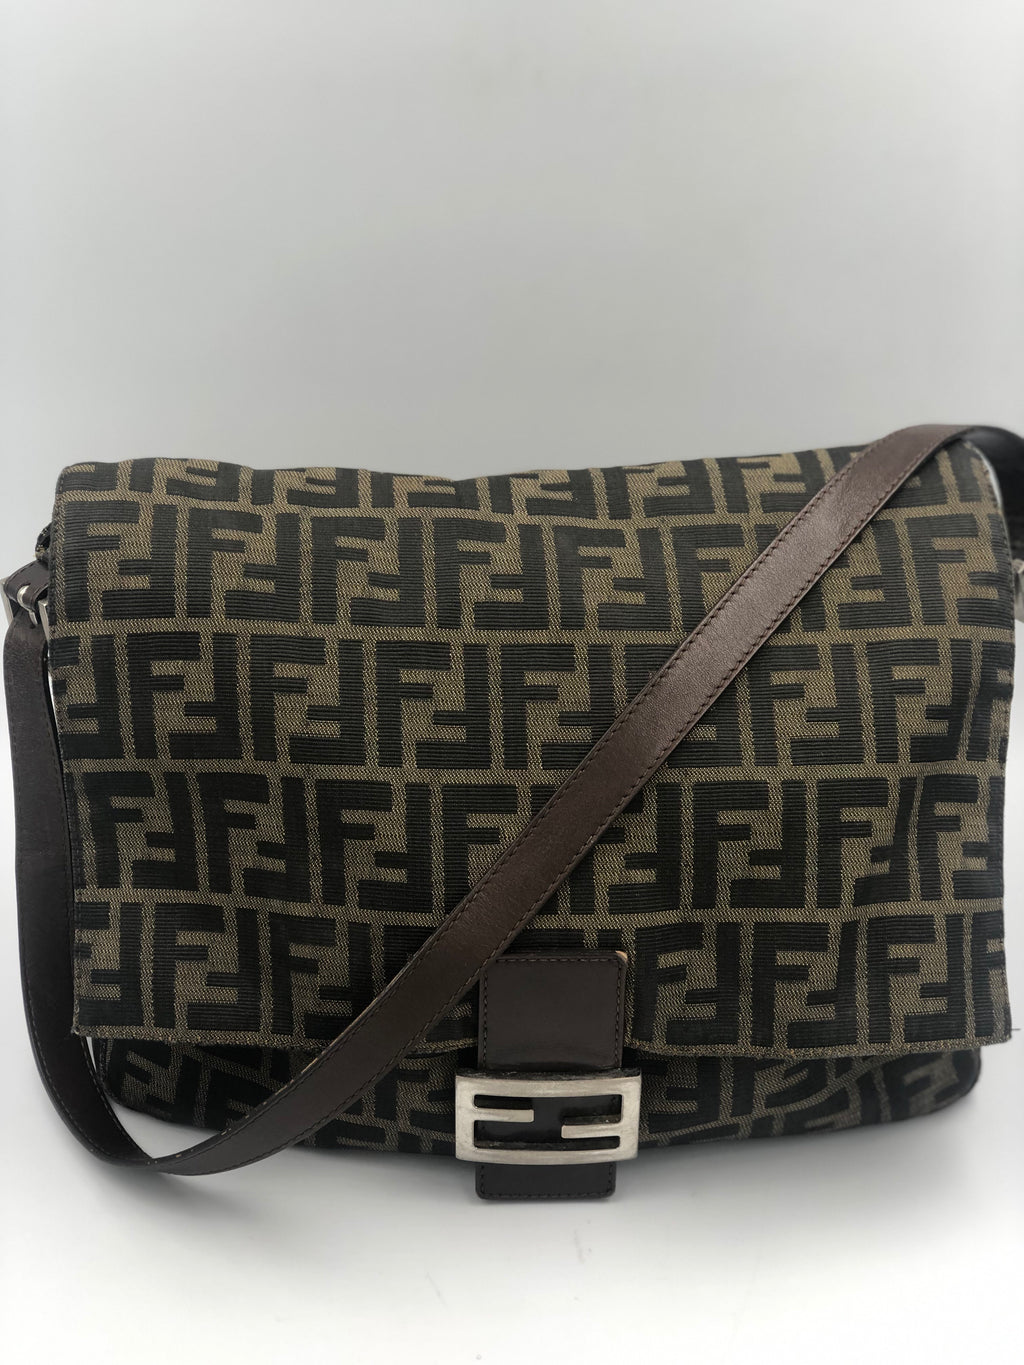 Cartera Shoulder Bag Monogram Fendi